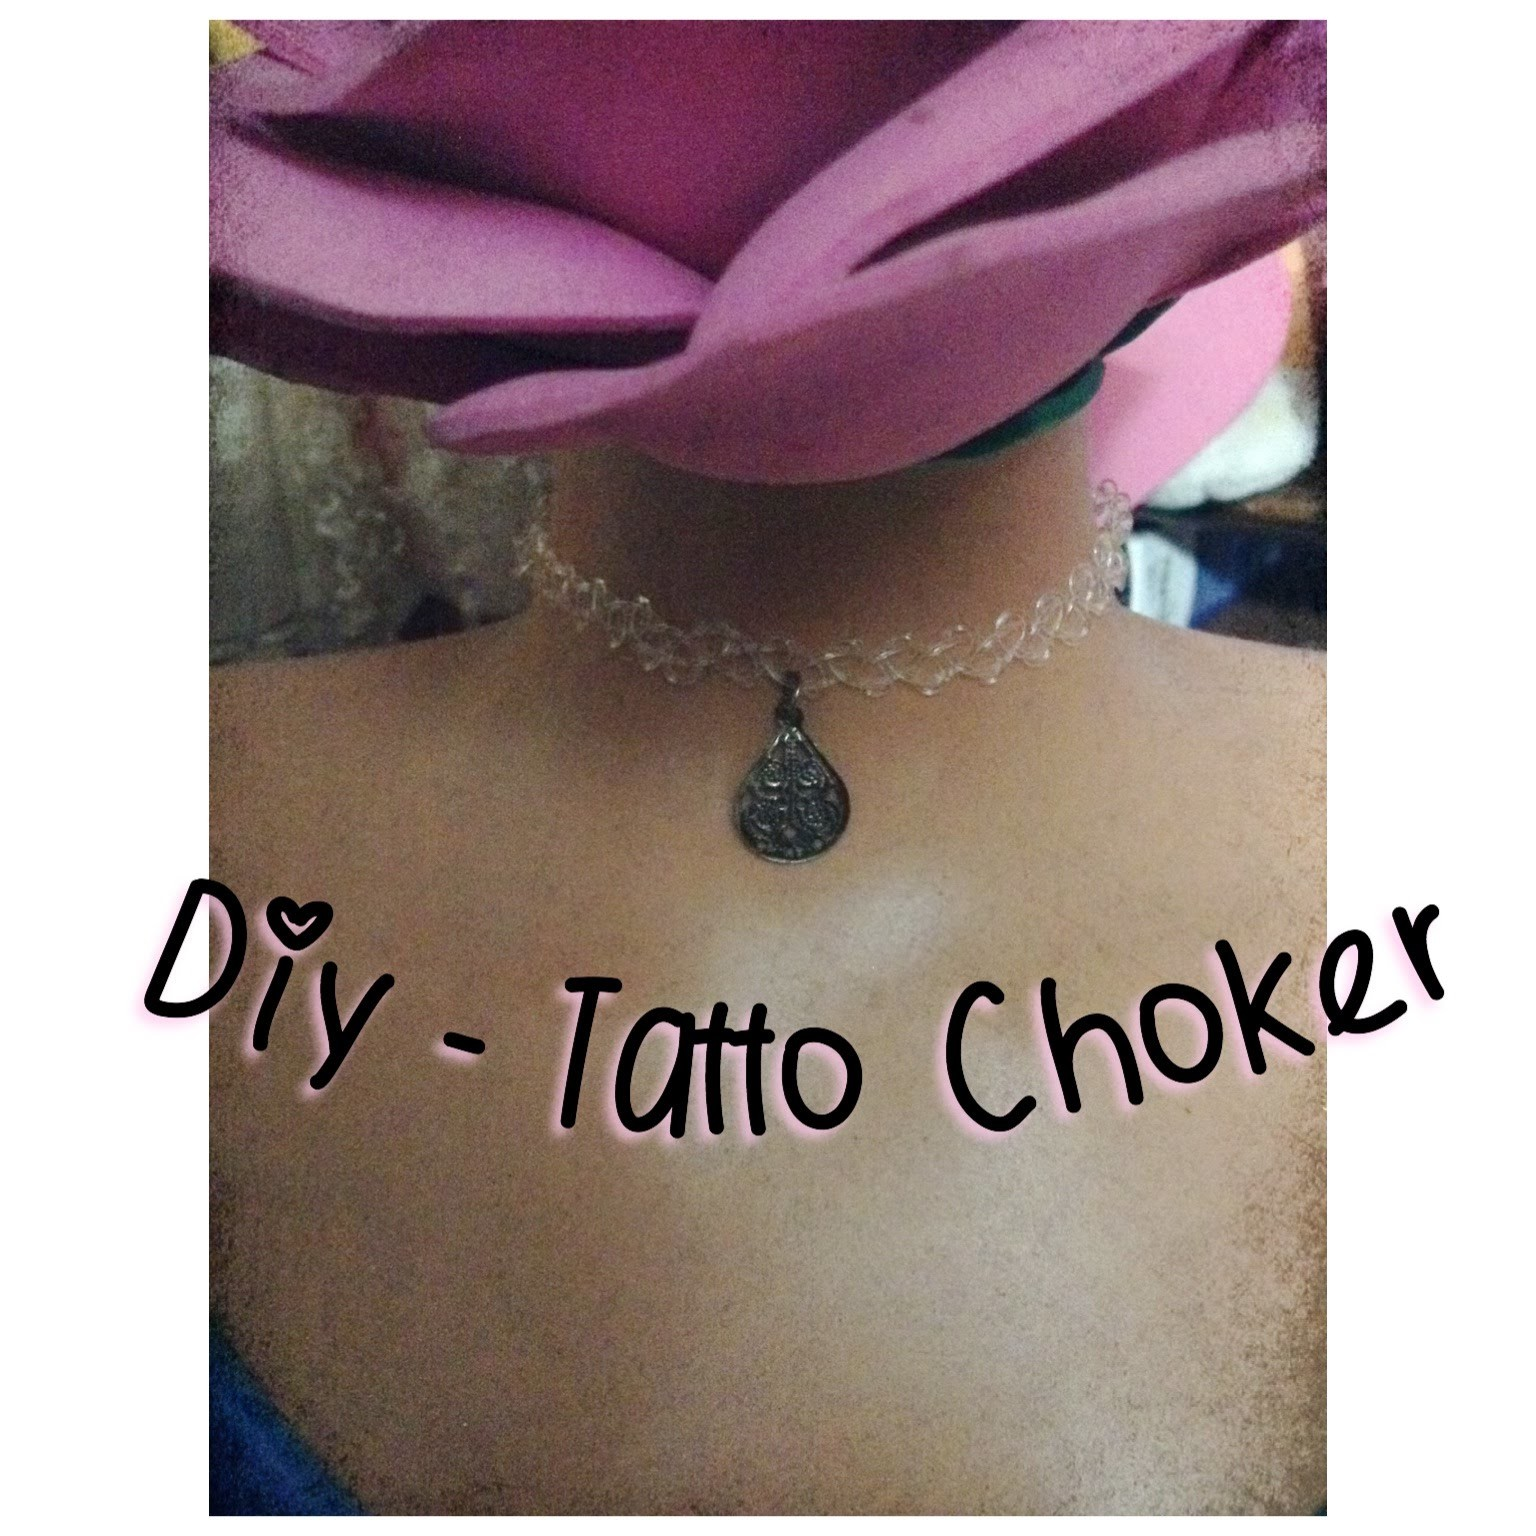 DIY - Tatto Chocker